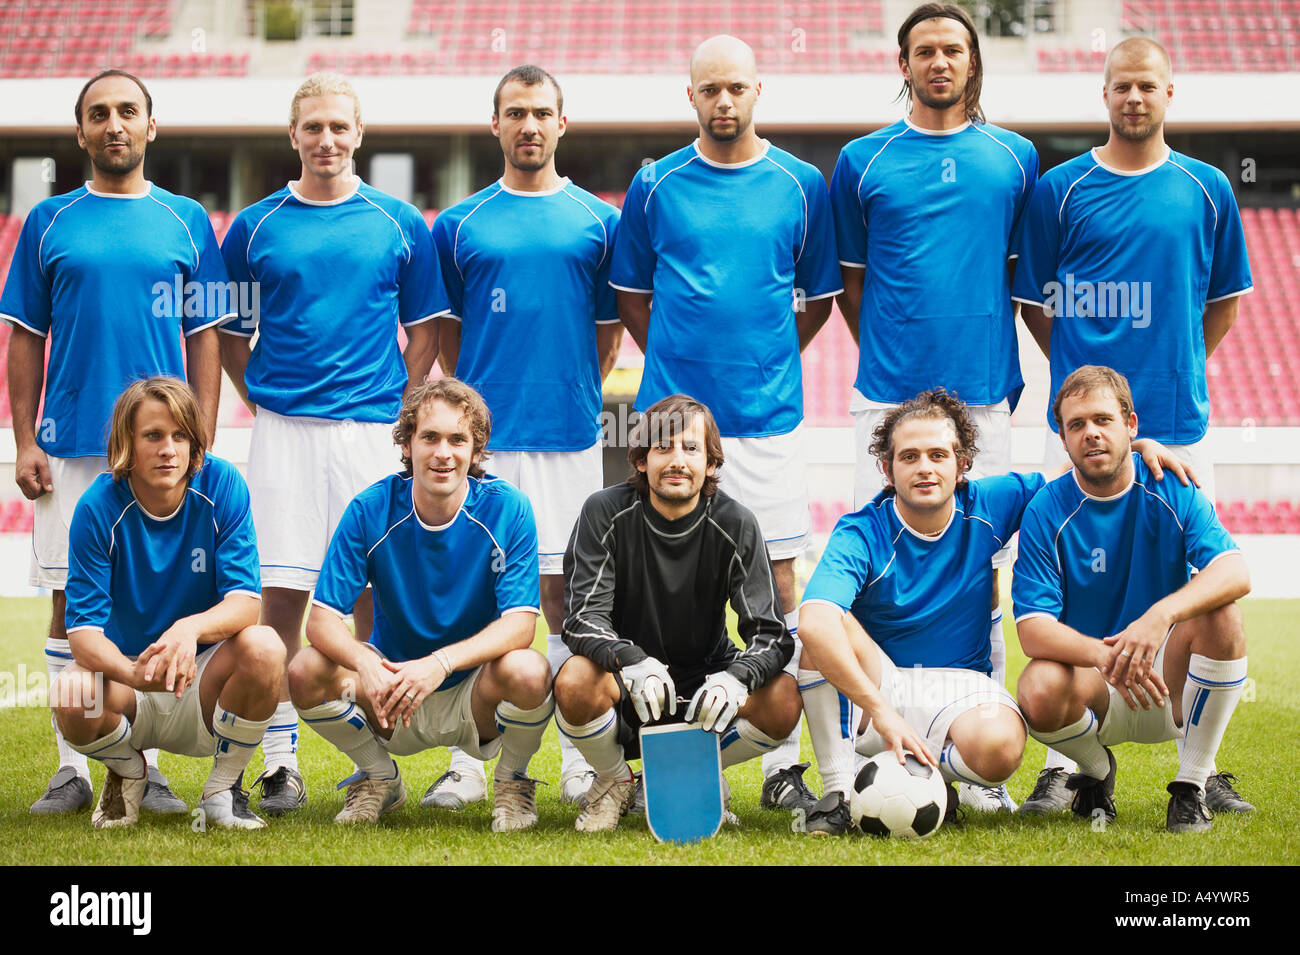 Football team in blue - Stock Image